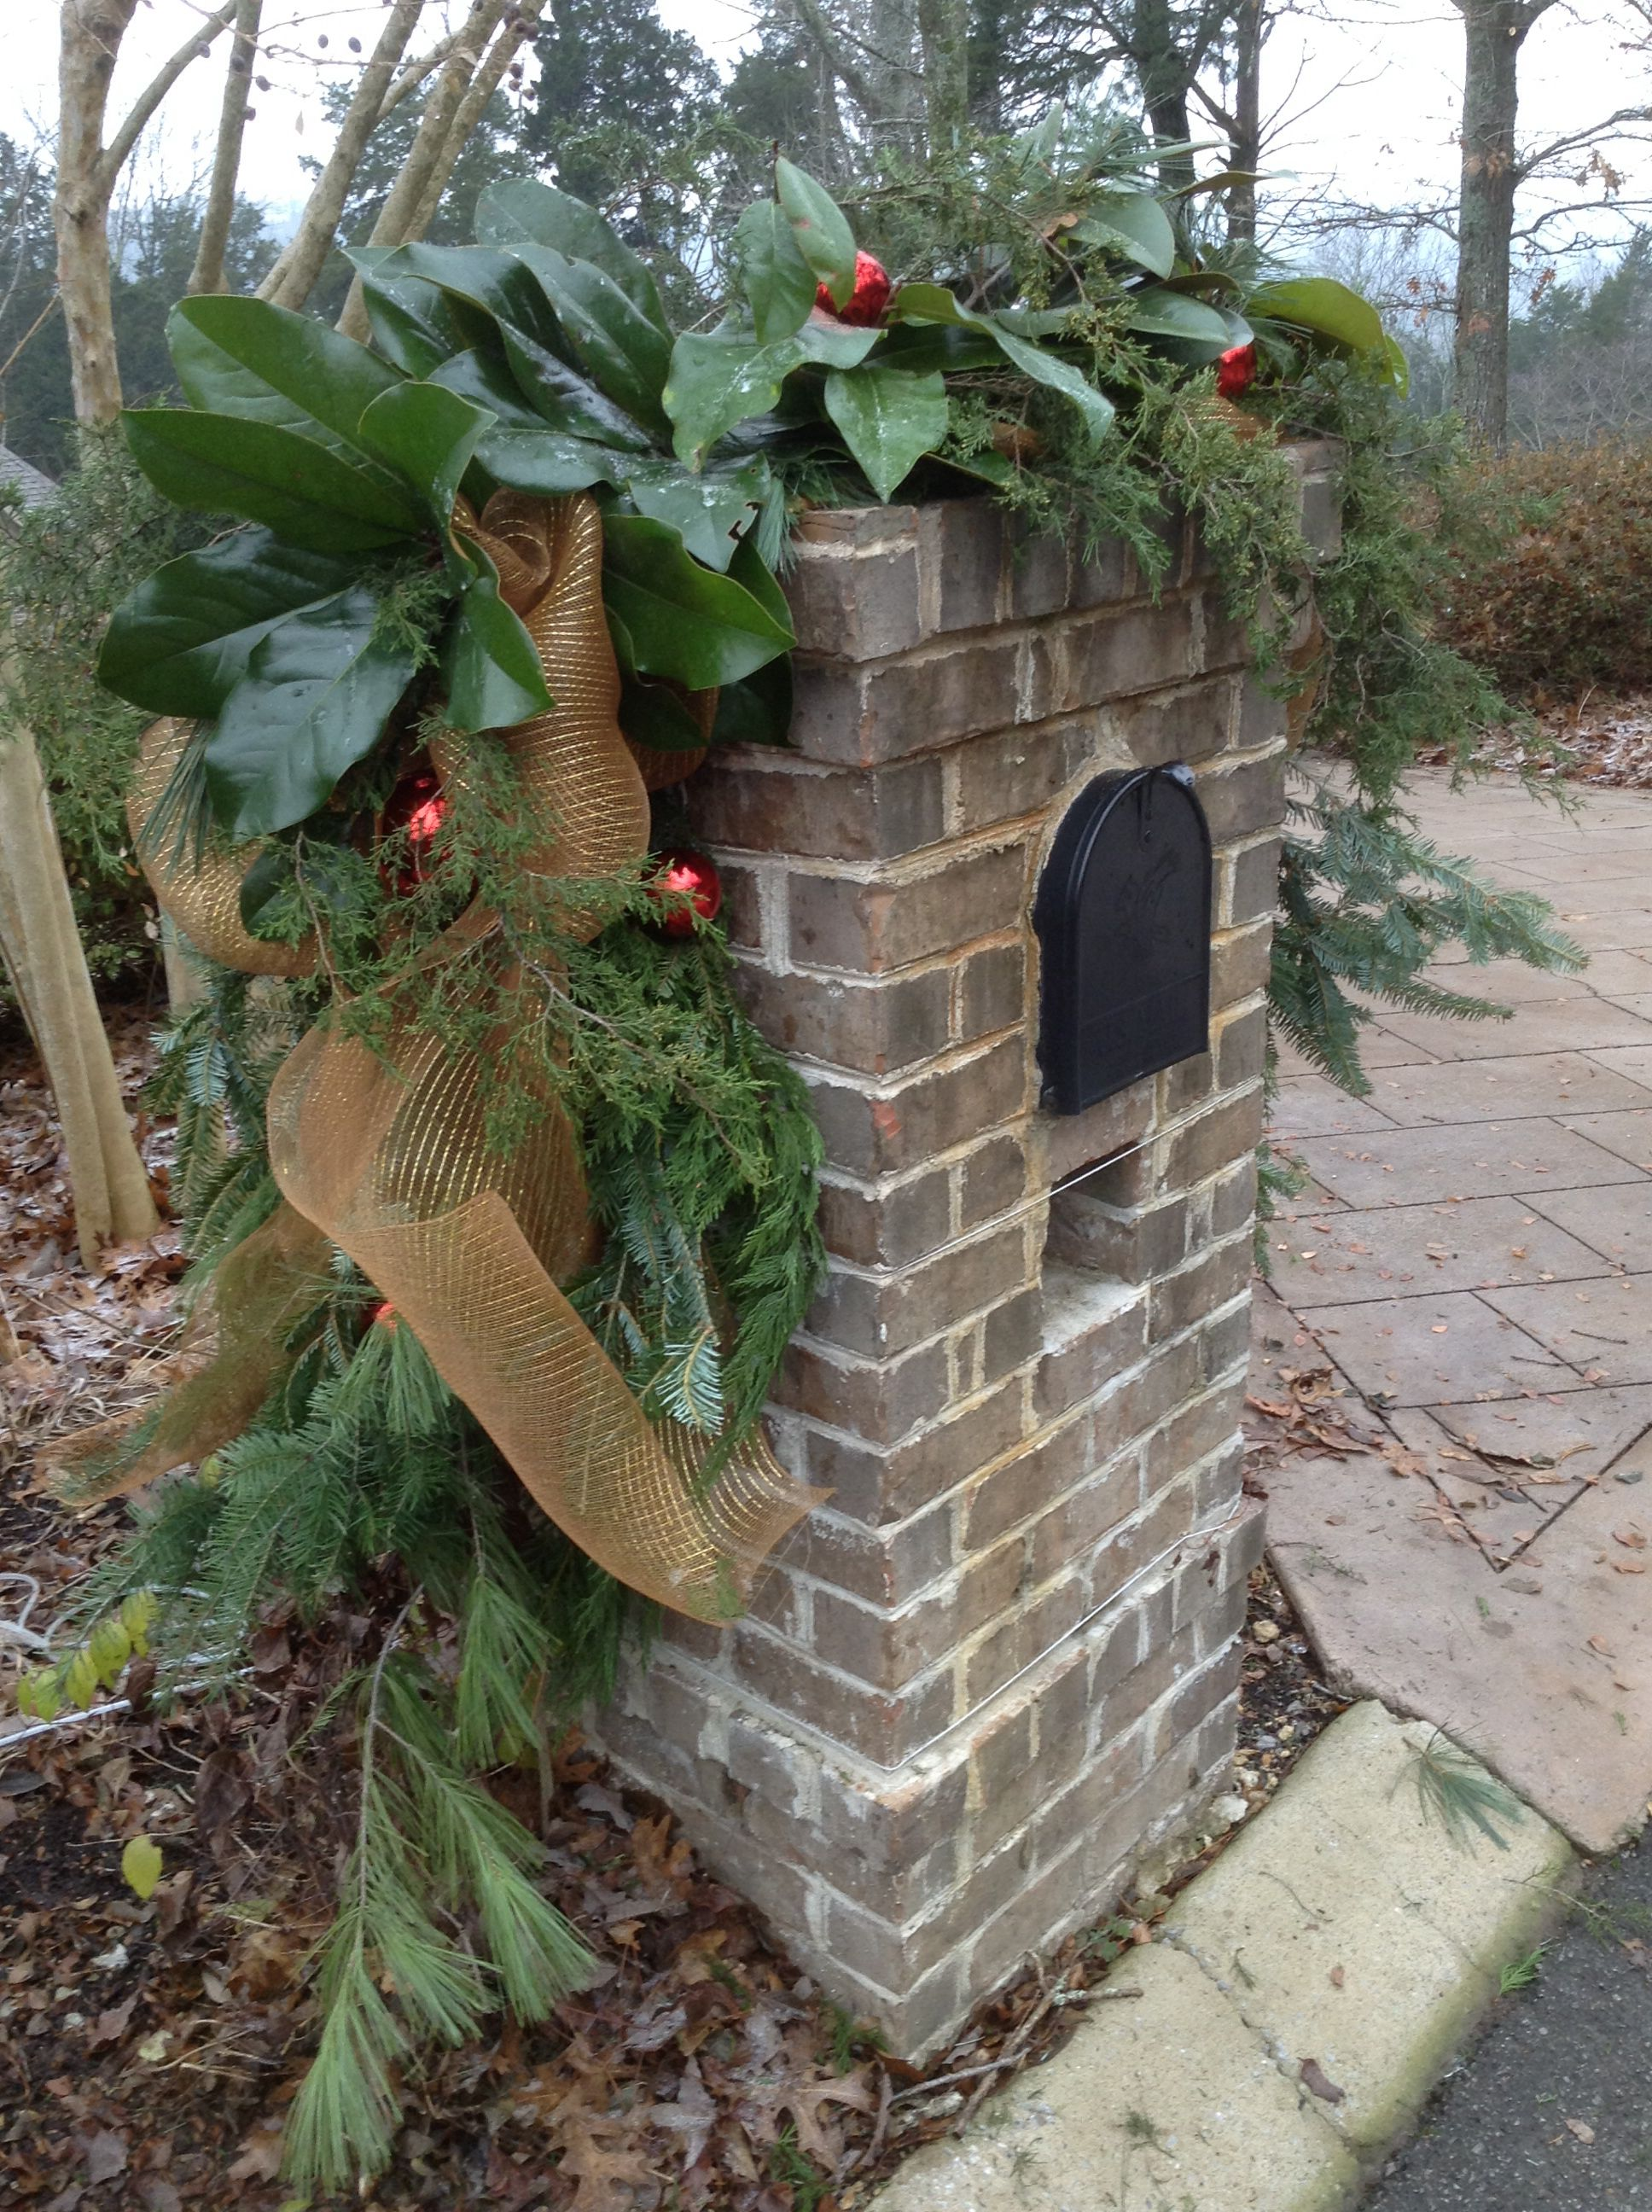 christmas mailbox decoration antique gold deco mesh and red ornaments decorate this brick mailbox covered in lush evergreens and magnolia